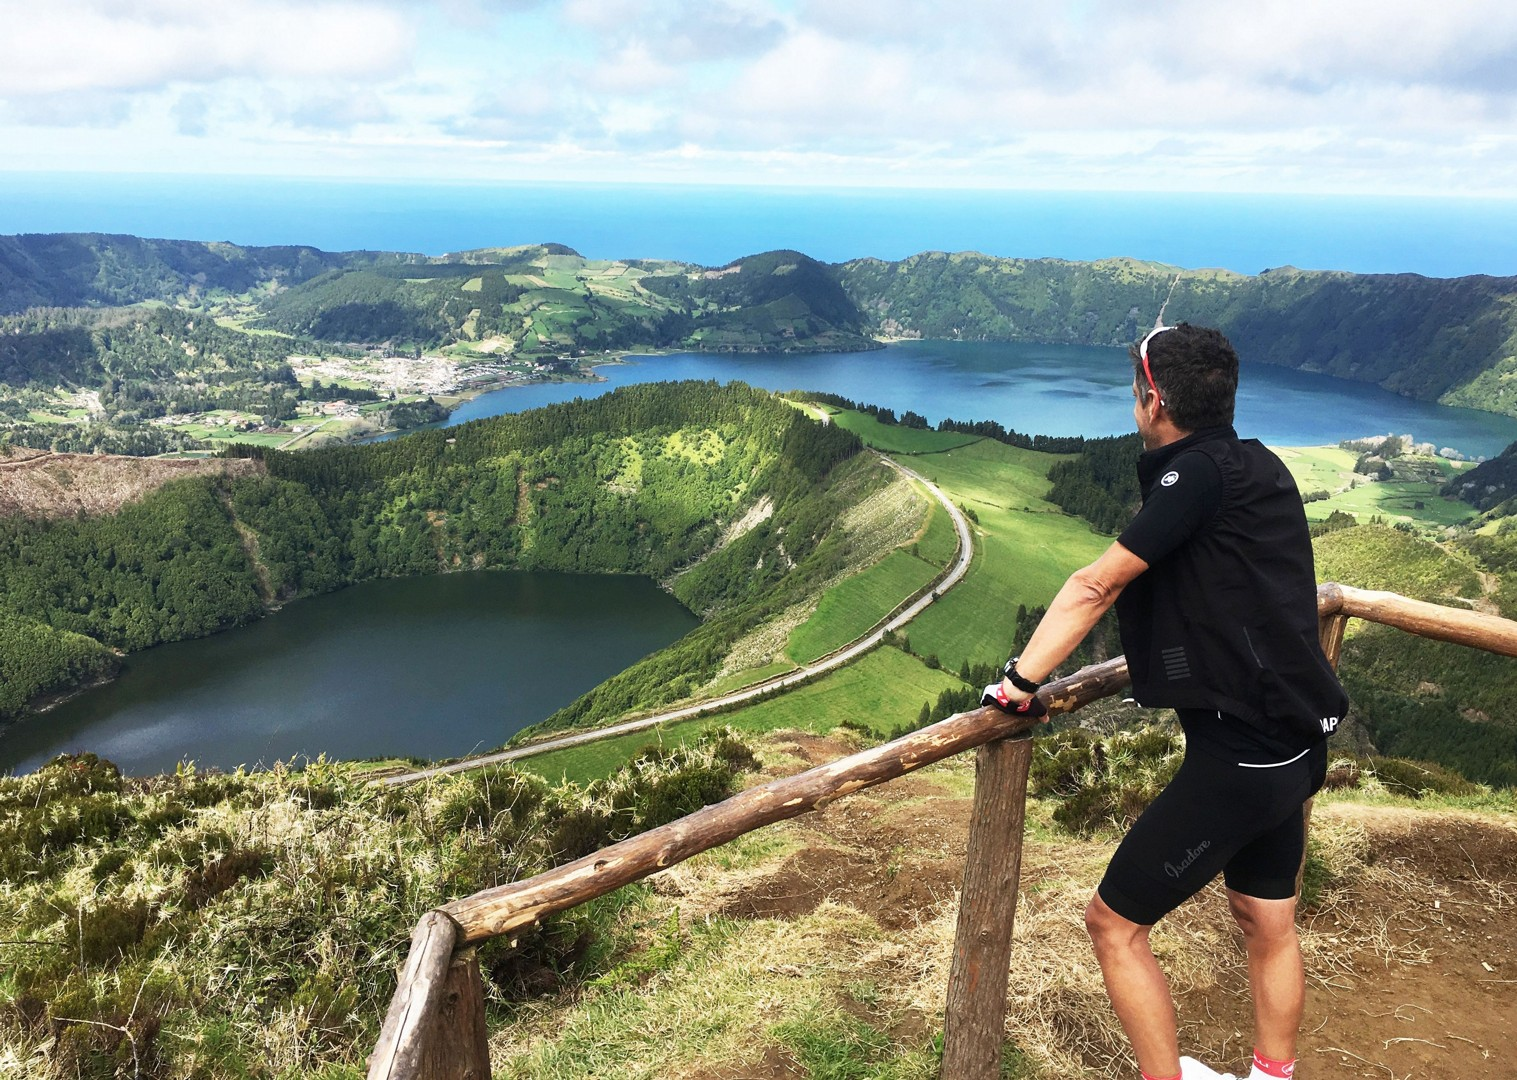 sete-citades-guided-road-cycling-holiday-the-azores-lost-world-of-sao-miguel.jpg - The Azores - Lost World of Sao Miguel - Road Cycling